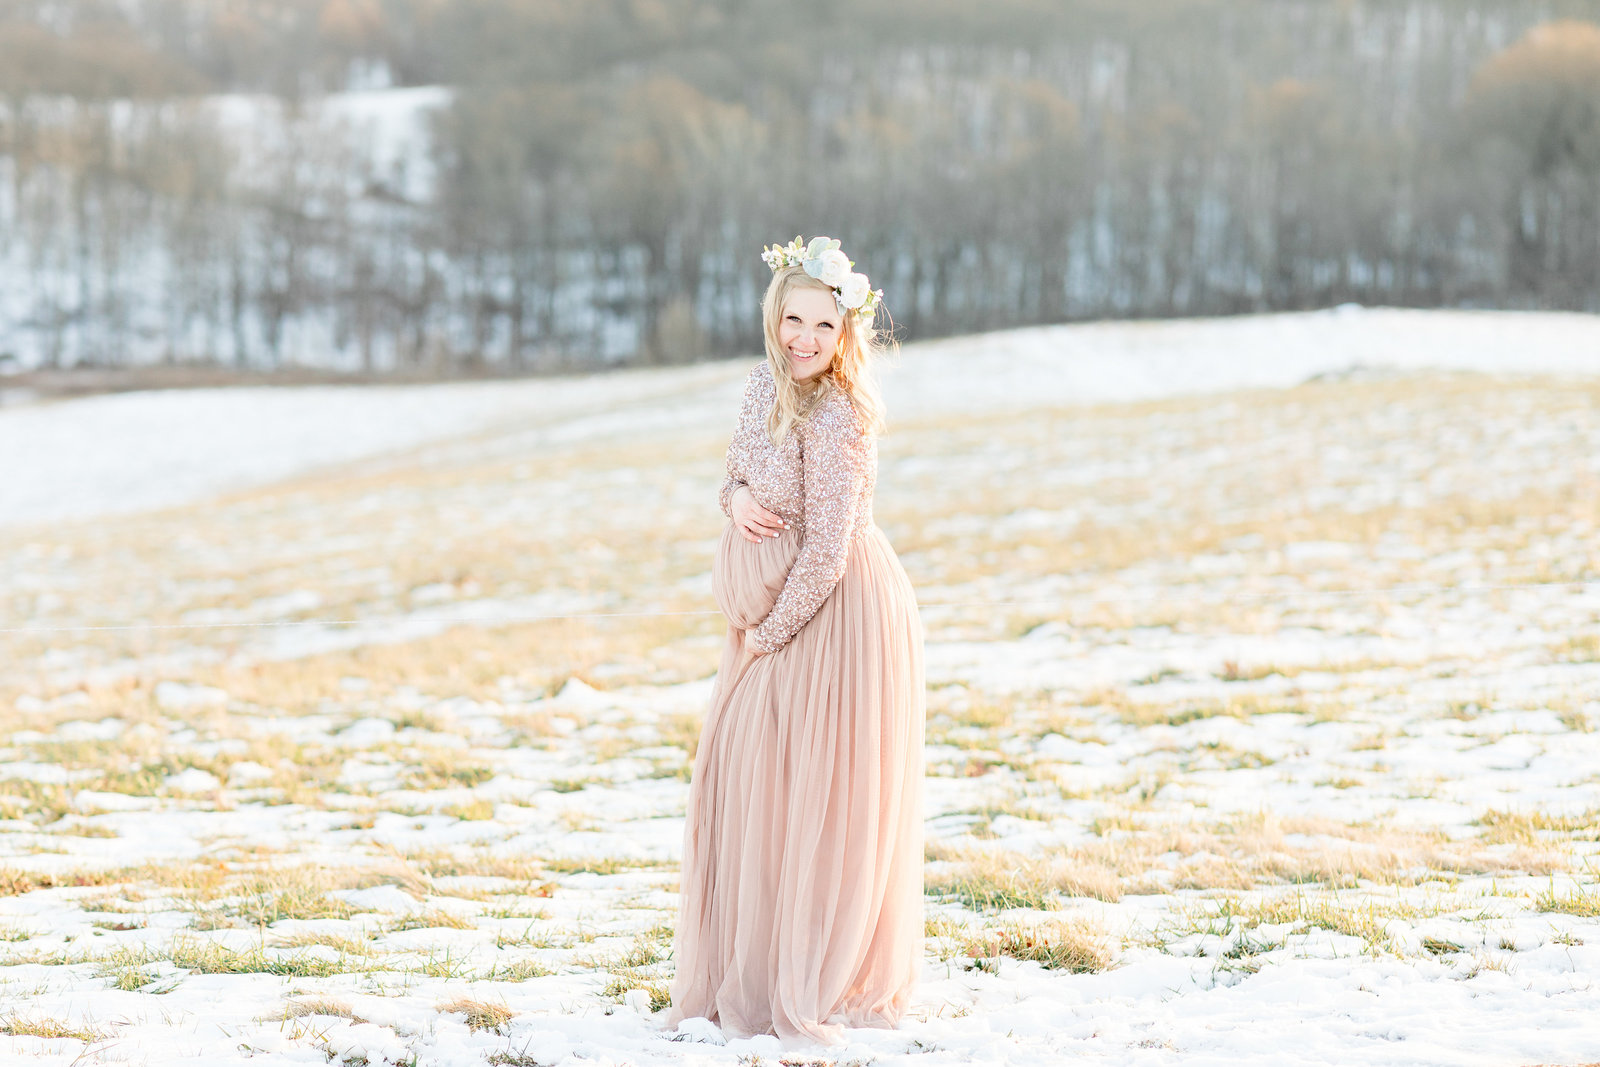 jess-dereck-snowy-winter-maternity-photo-session-010